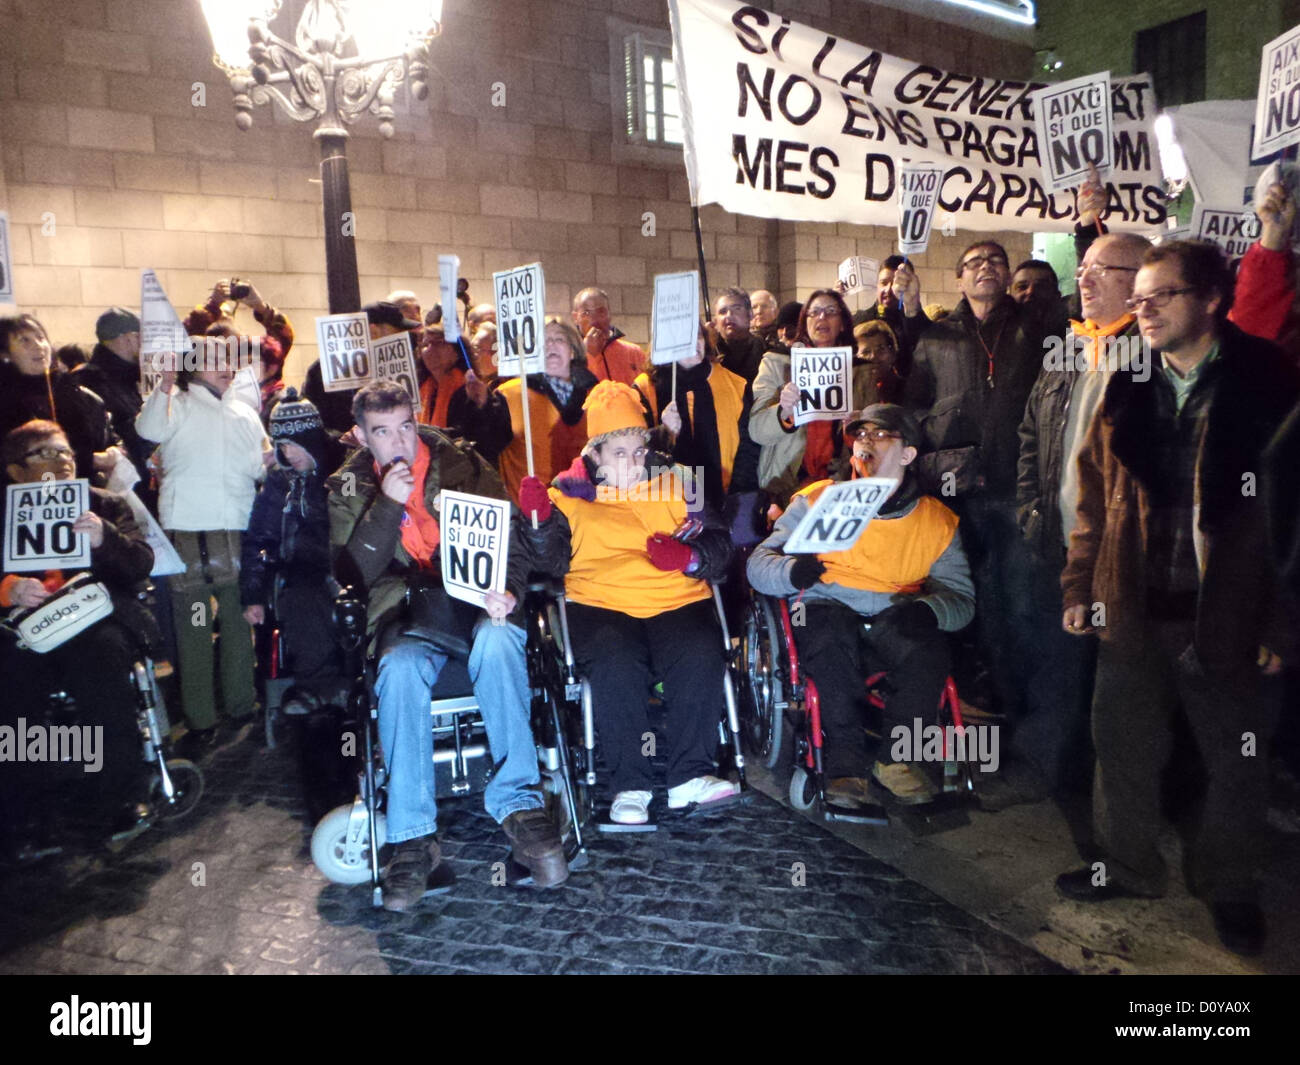 3rd December at 7.00 pm, Barcelona. Protests against cuts in the budget for people with disabilities in the Plaça - Stock Image